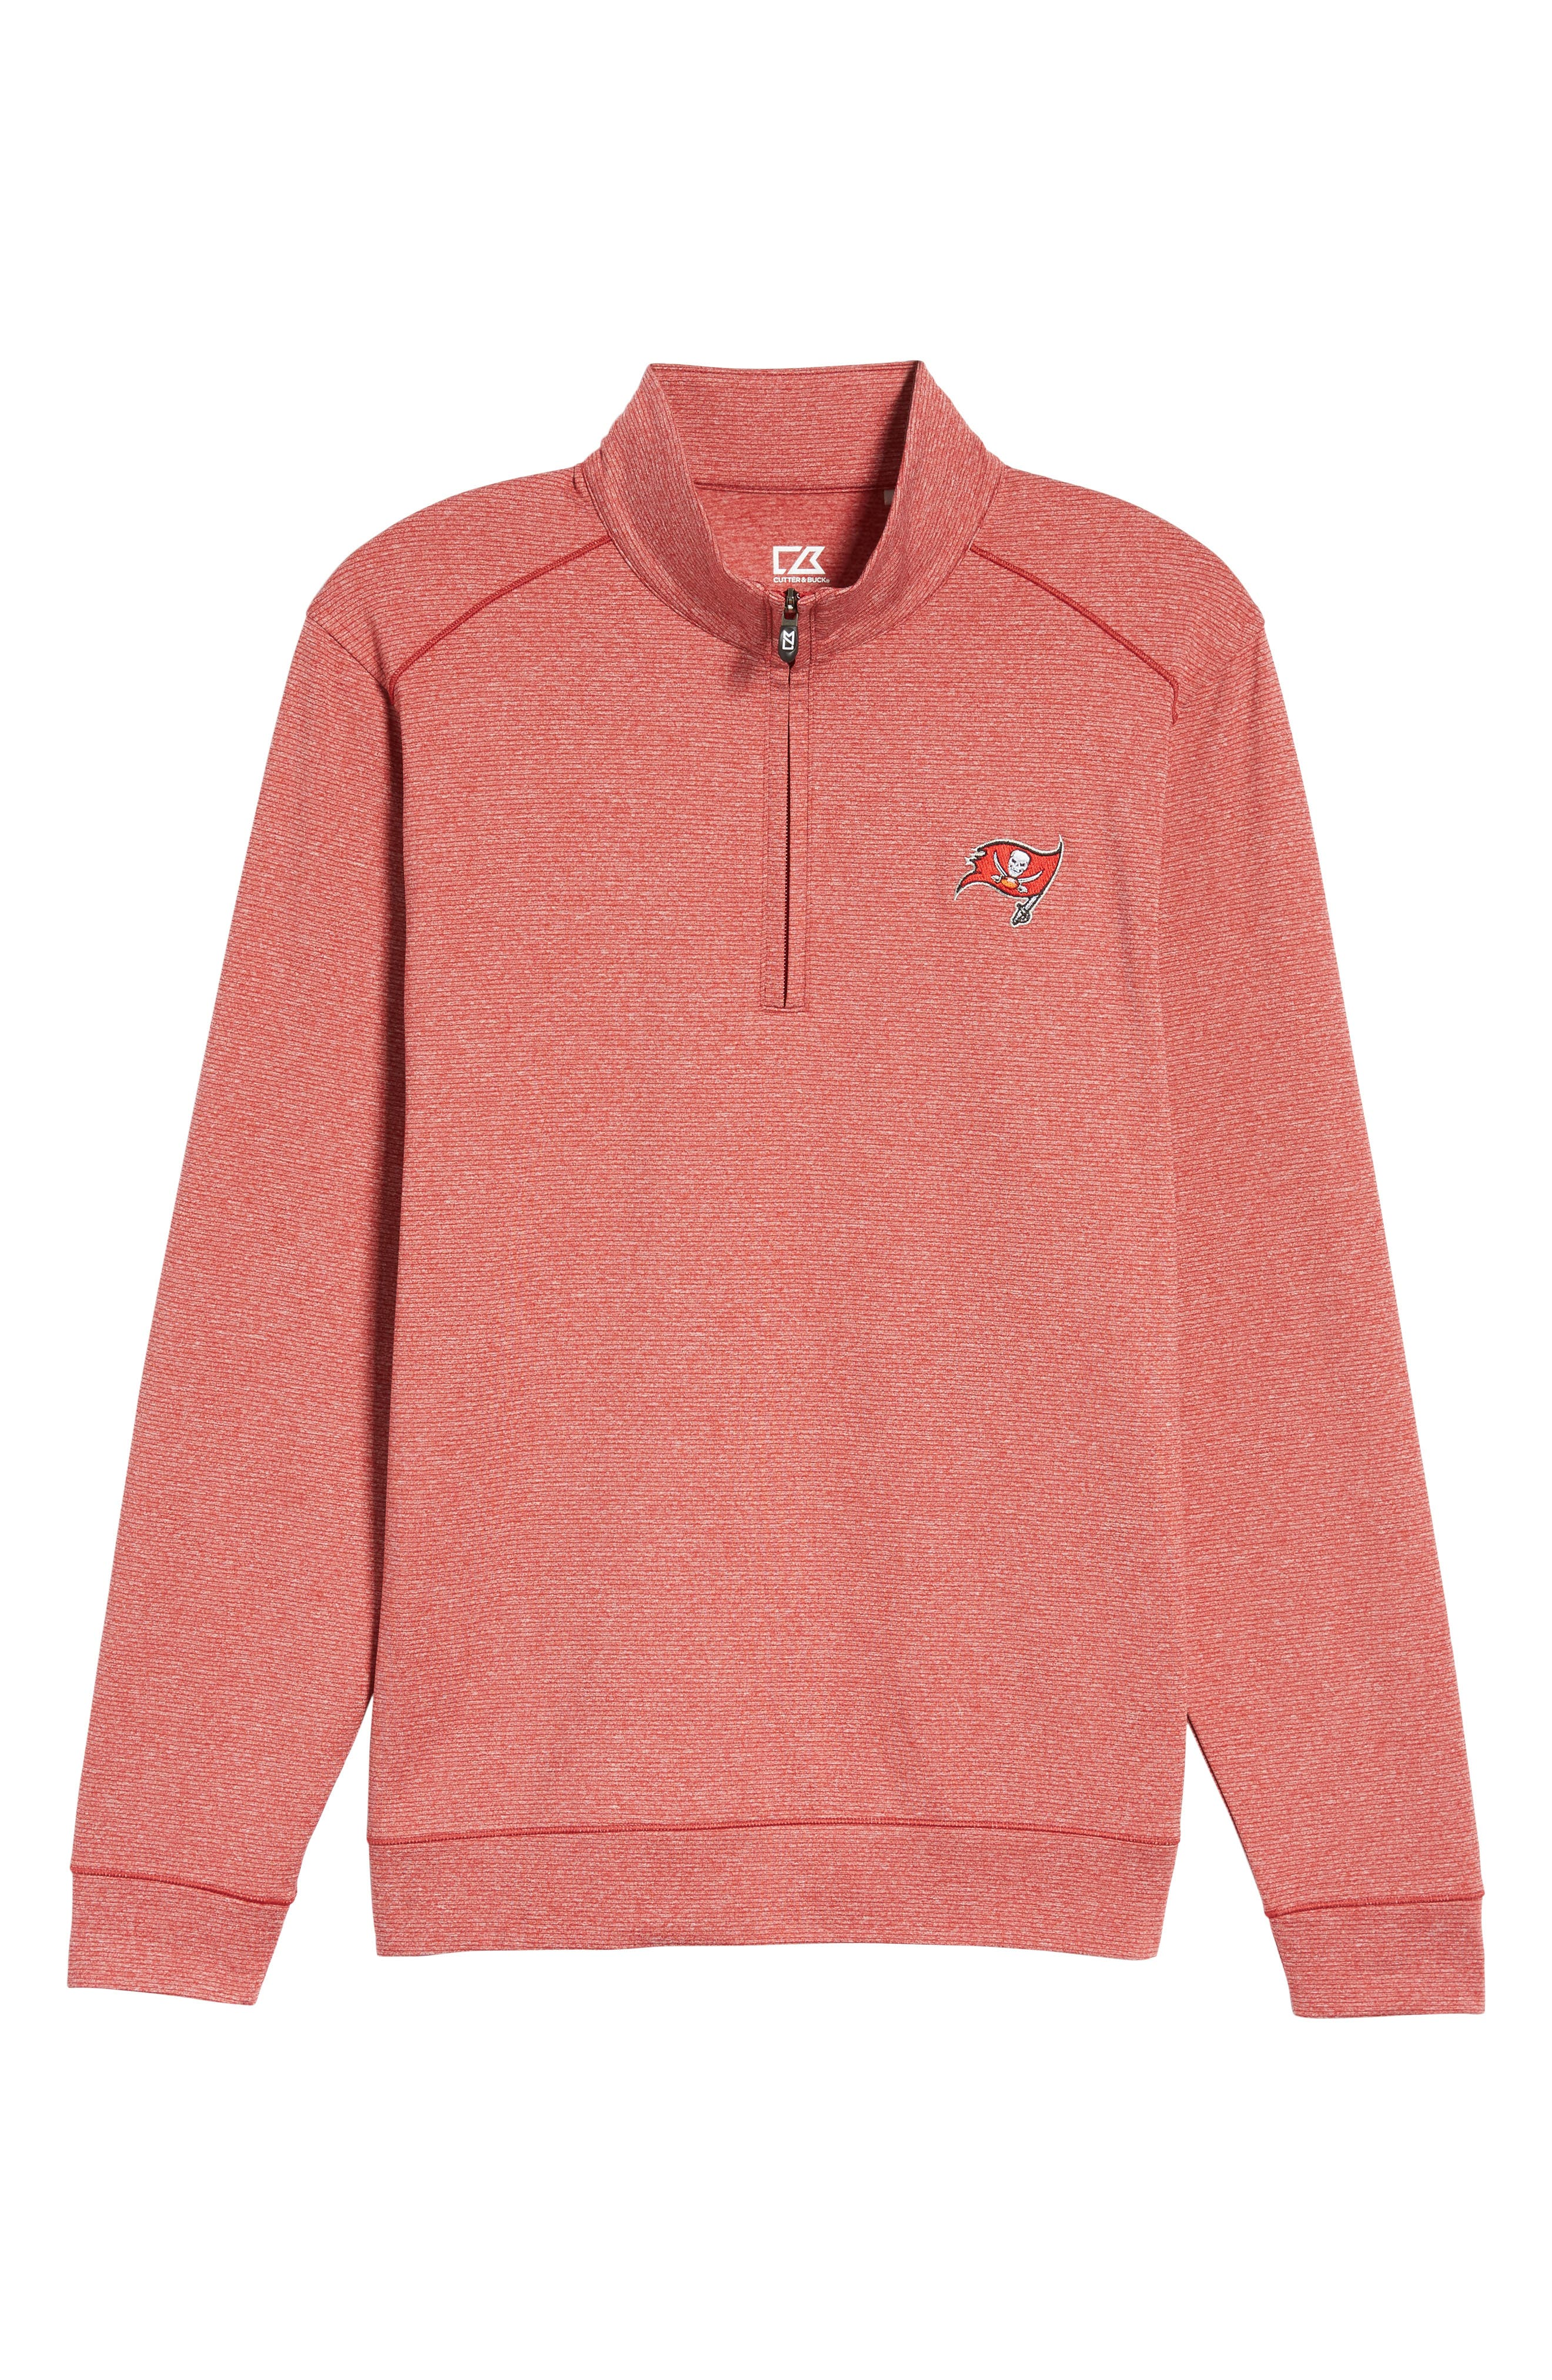 Shoreline - Tampa Bay Buccaneers Half Zip Pullover,                             Alternate thumbnail 6, color,